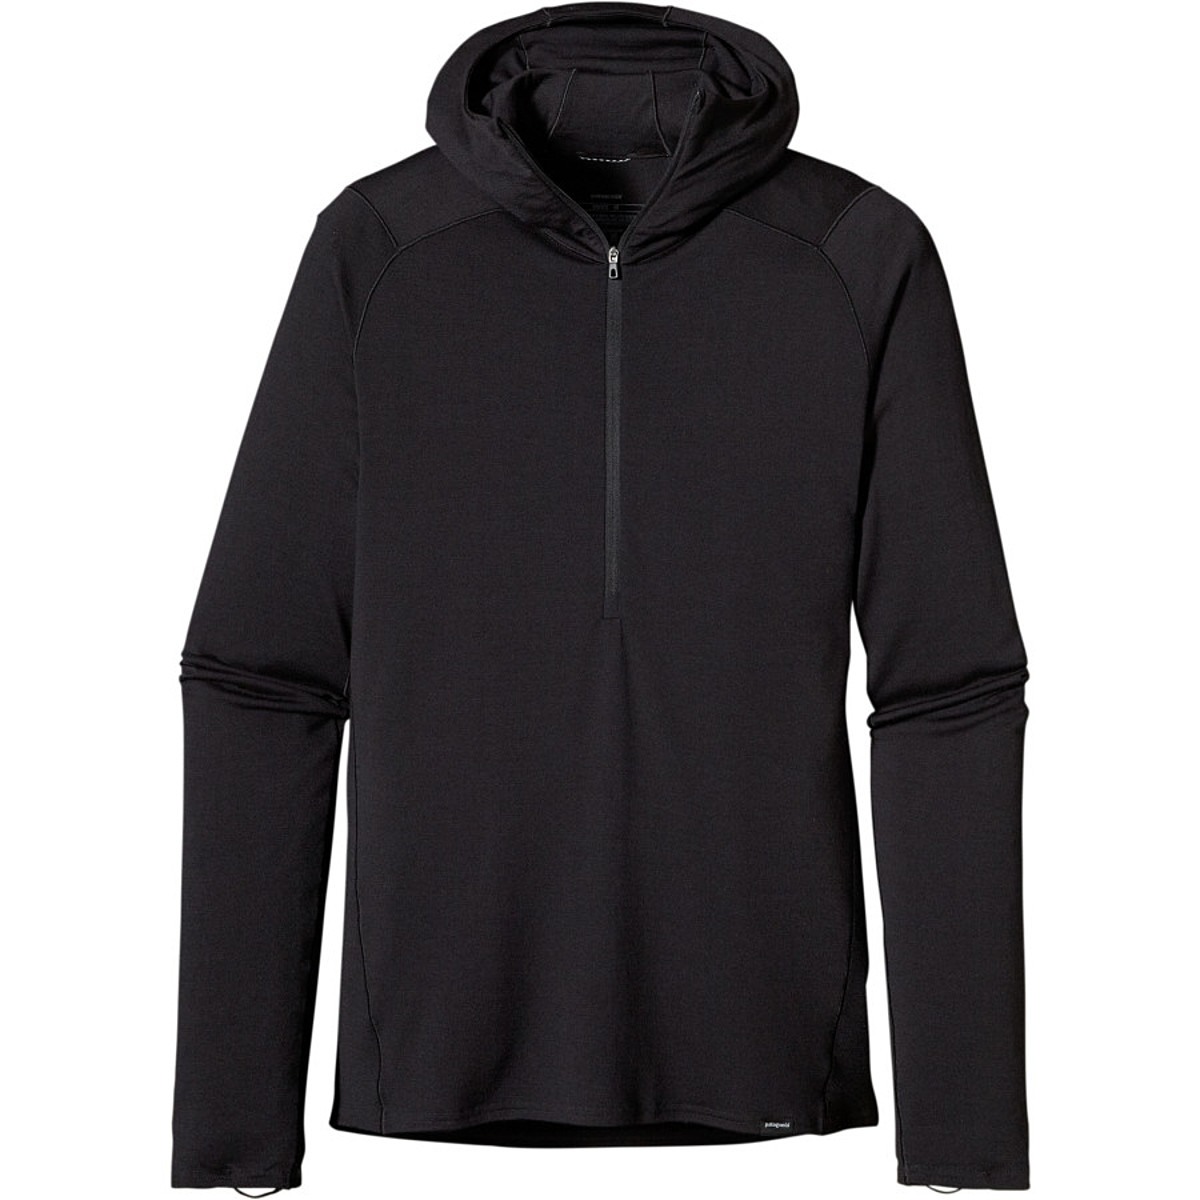 photo: Patagonia Men's Merino 3 Midweight Hoody base layer top